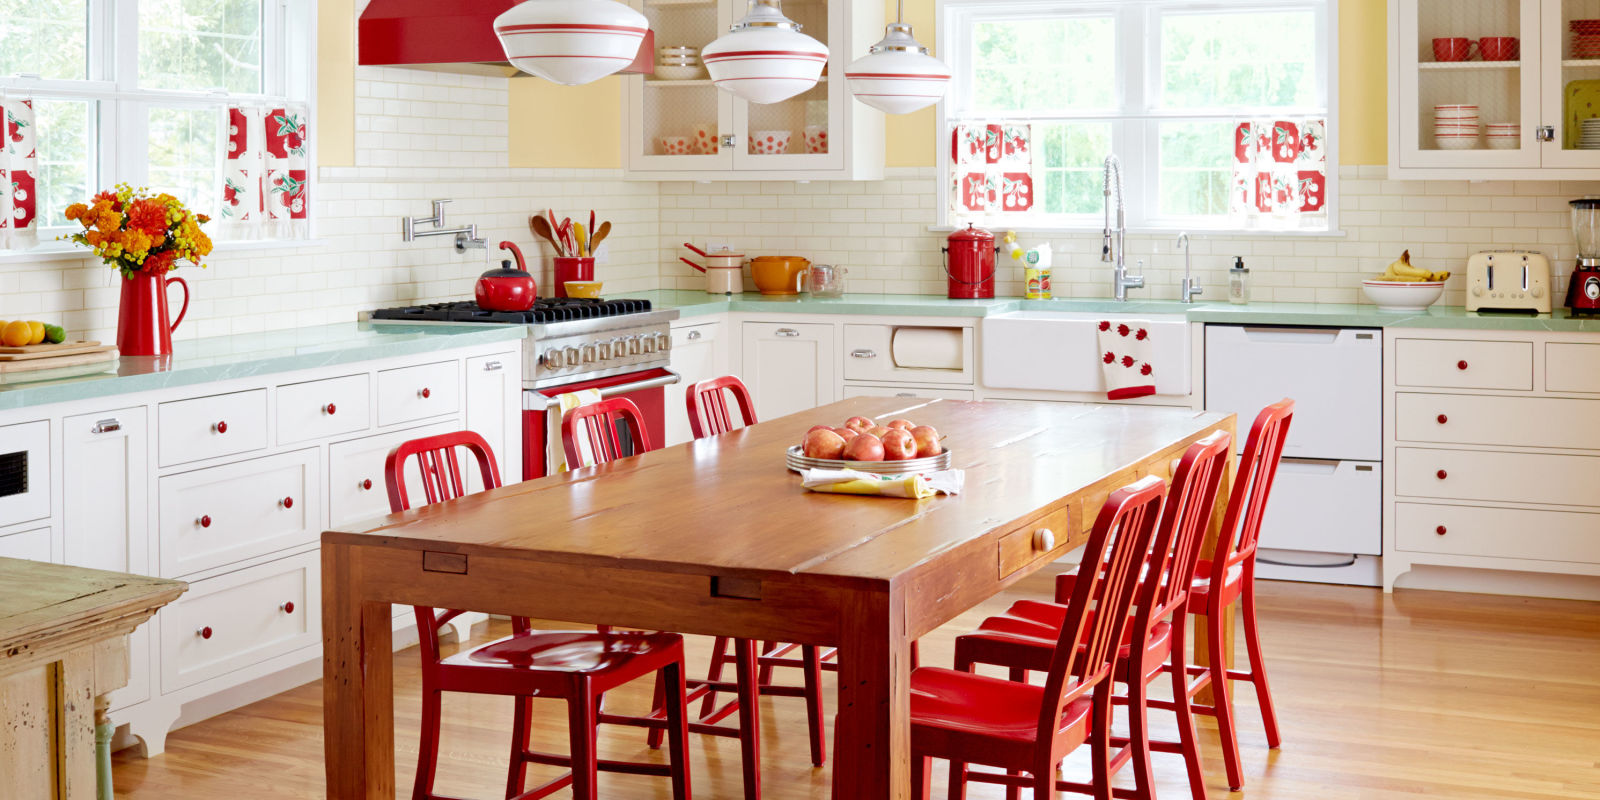 Retro kitchen kitchen decor ideas for 70s kitchen remodel ideas